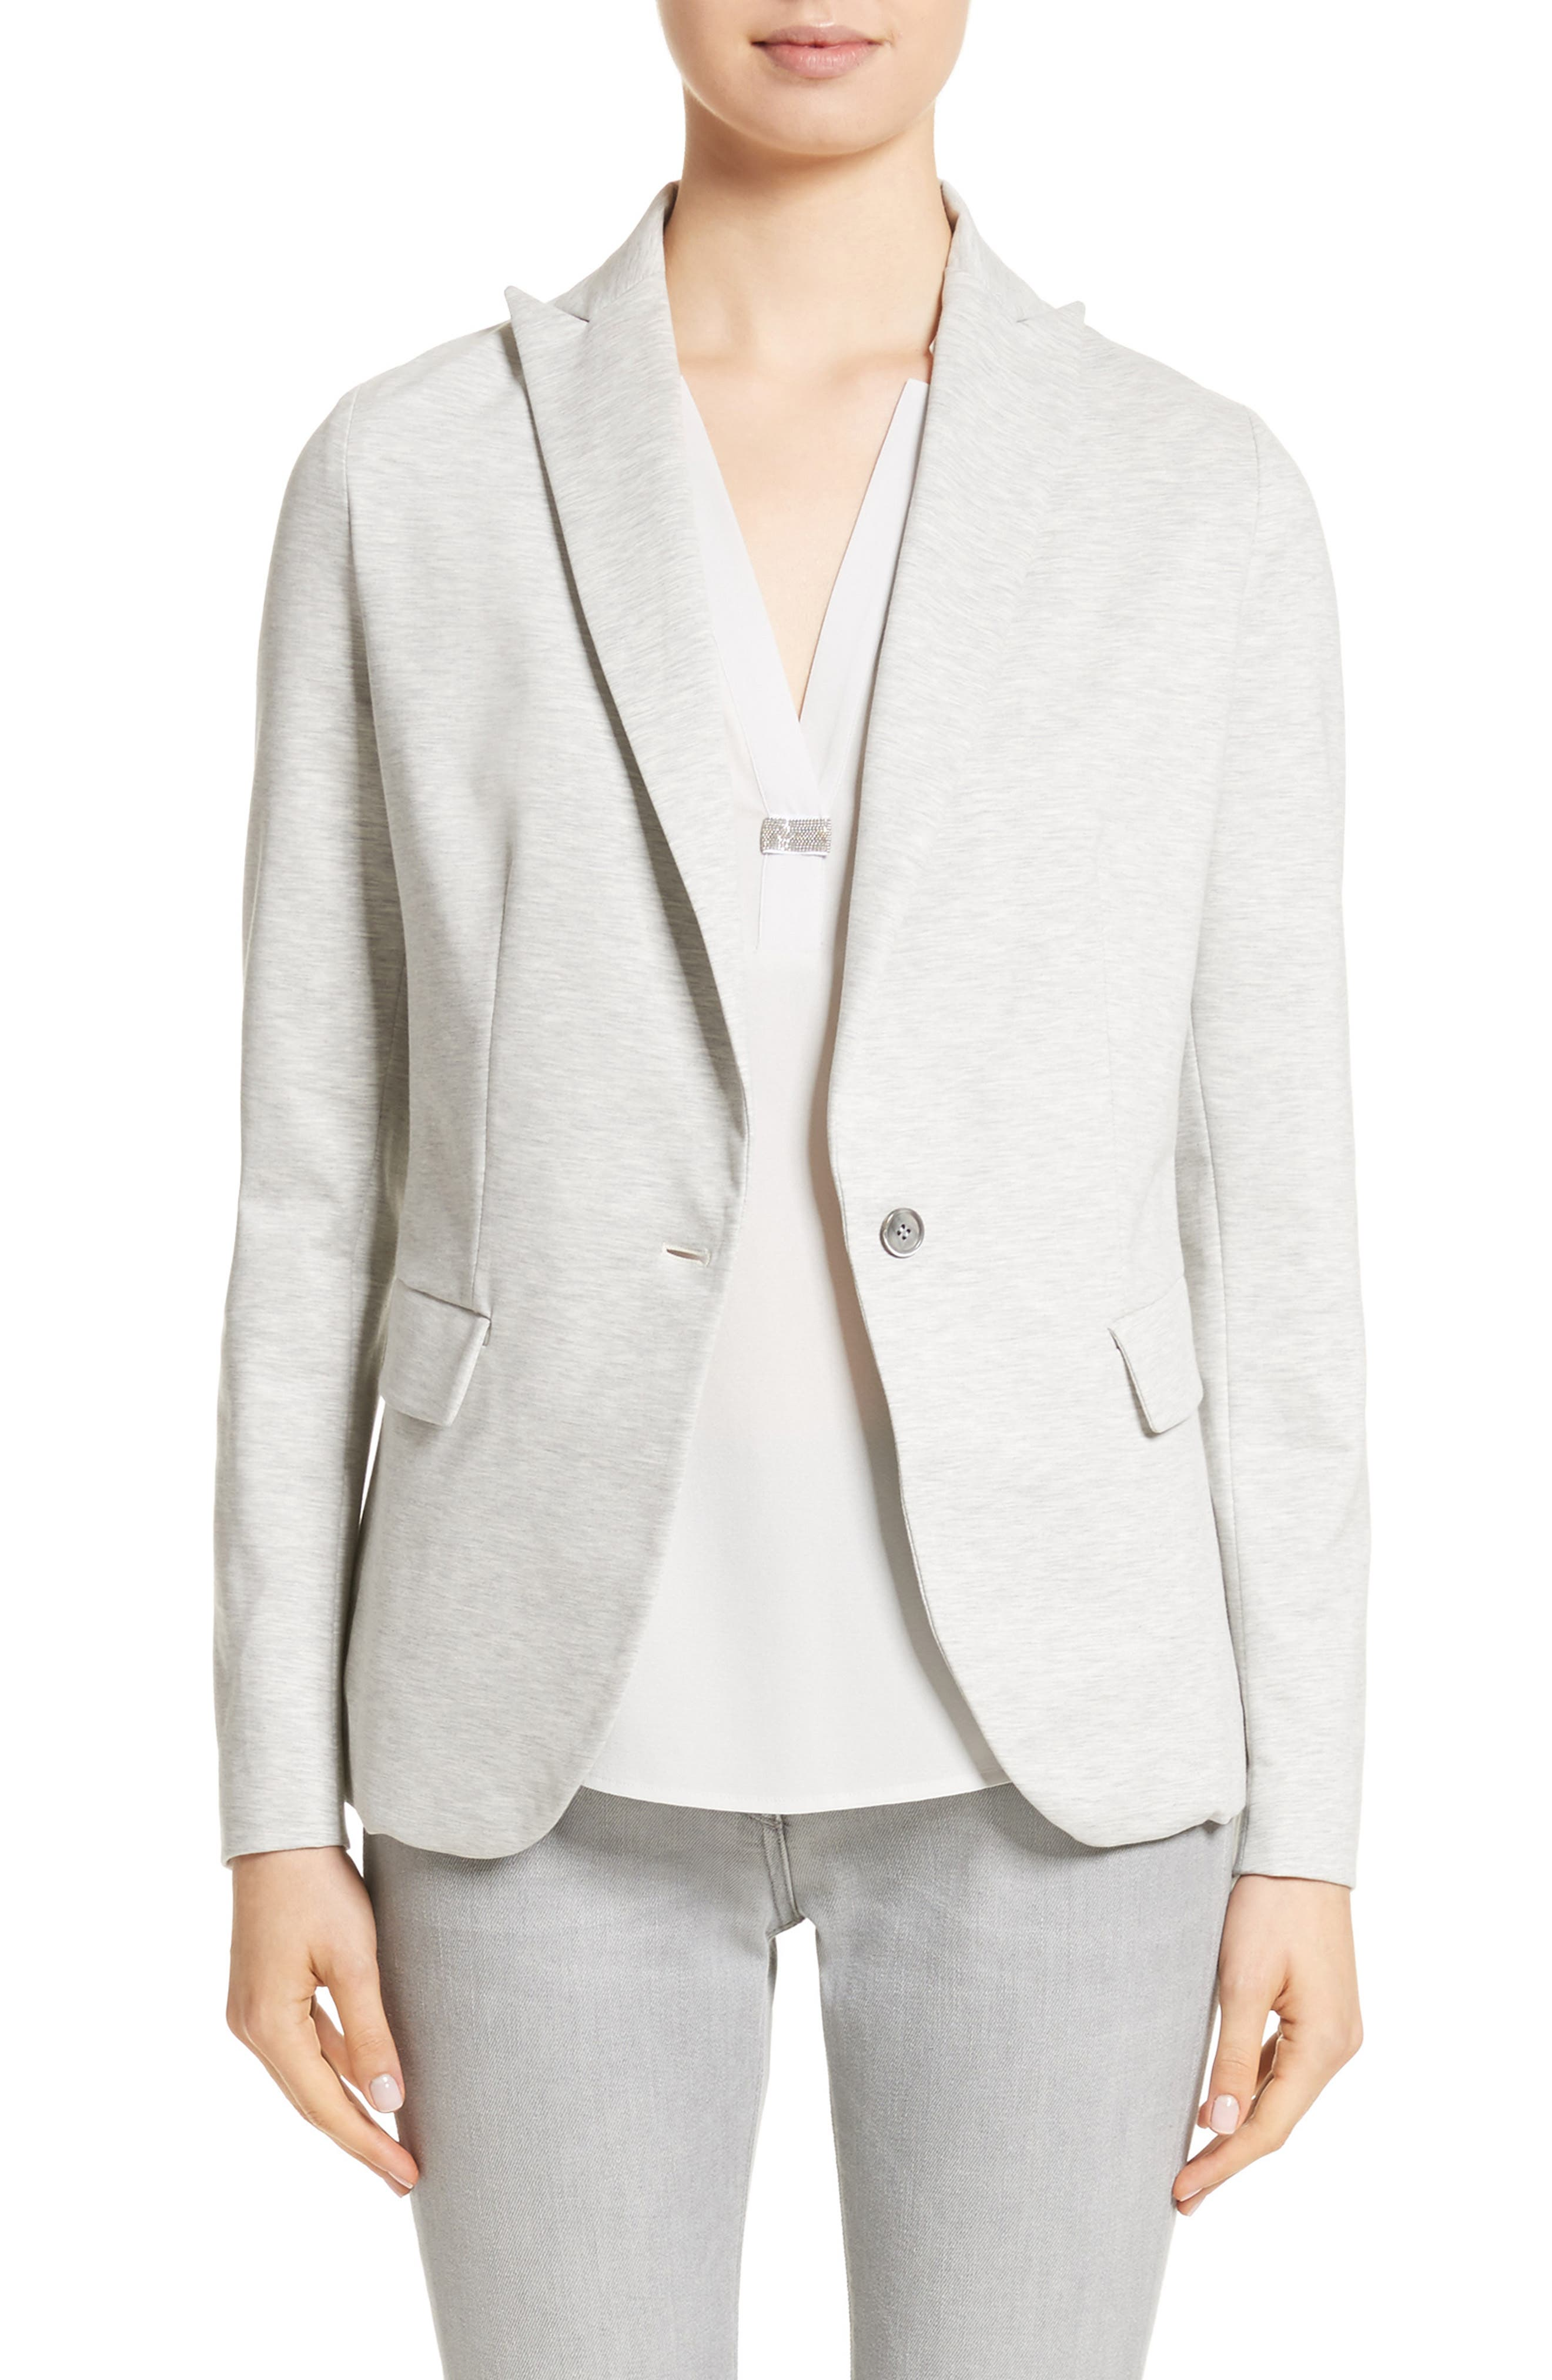 Rodier Jersey Blazer,                         Main,                         color, 050